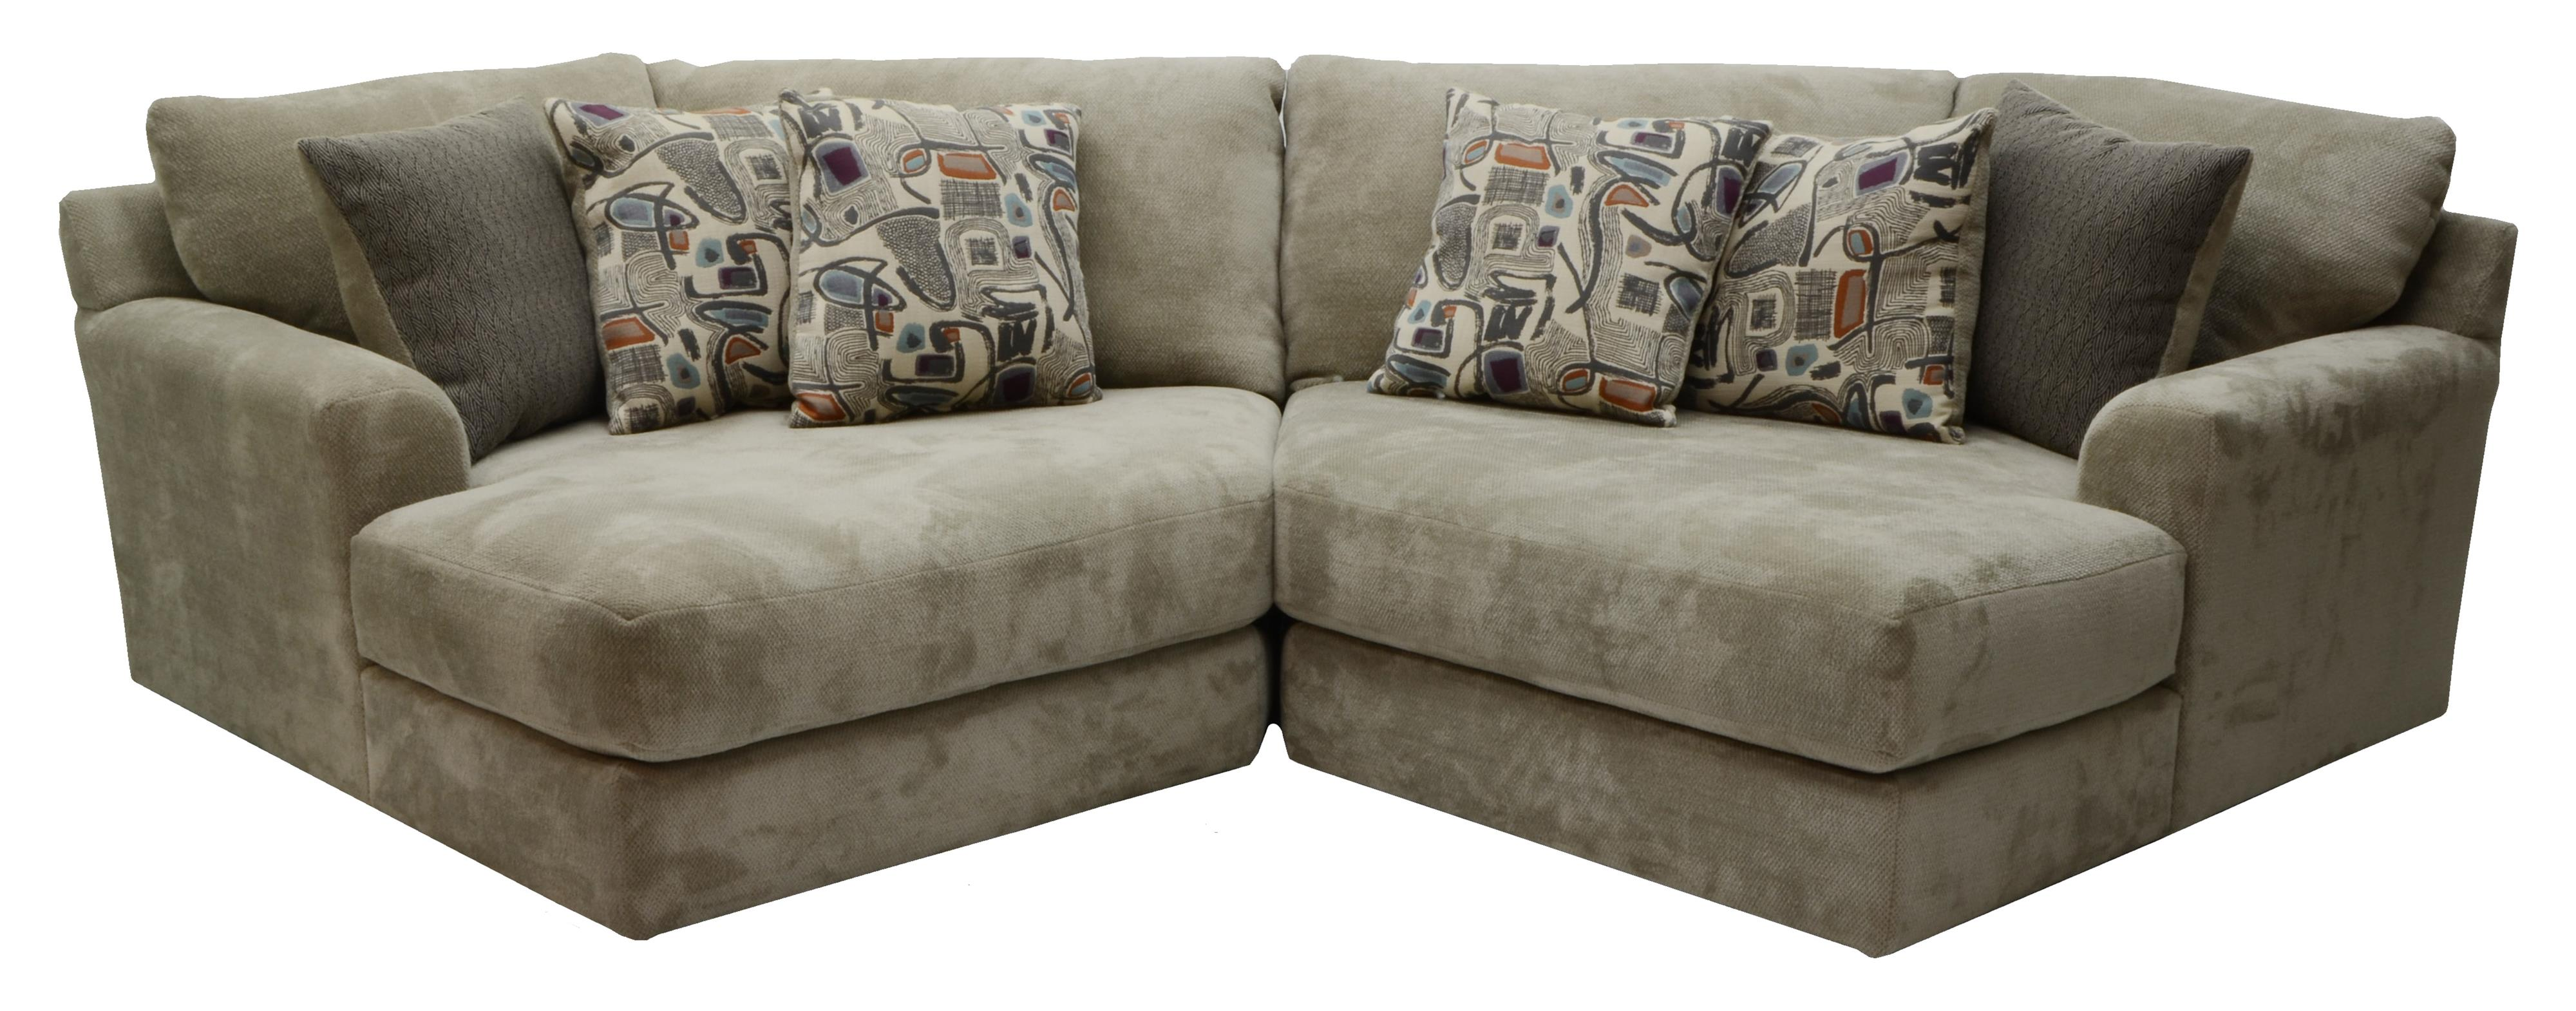 Two seat sectional by jackson furniture wolf and for Sectional sofas wolf furniture